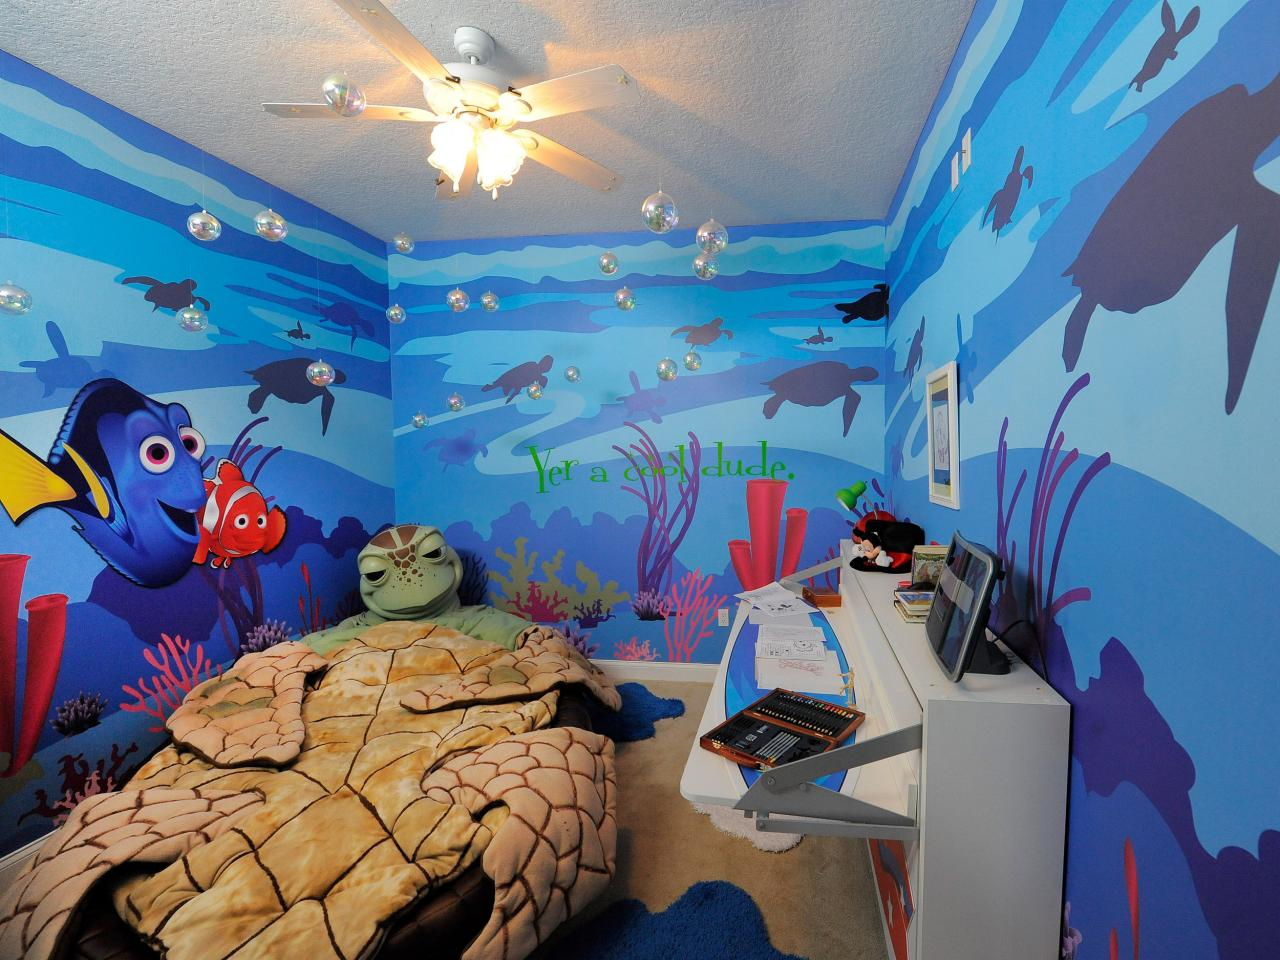 disney bedroom designs. Finding Nemo Kids Room Design 42 Best Disney Ideas and Designs for 2017